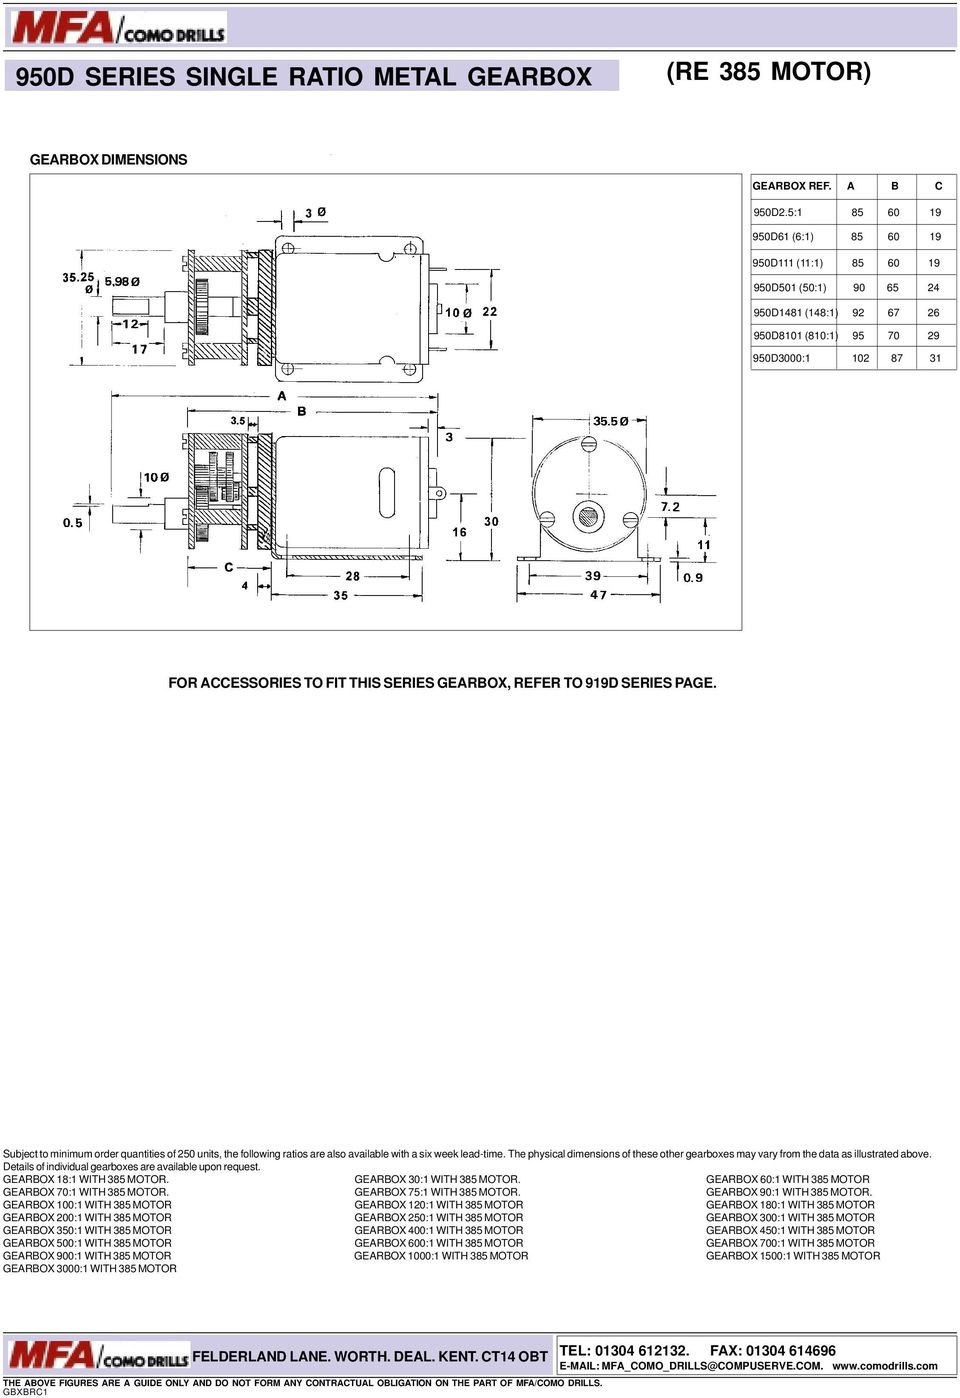 Low Voltage Dc Motors Gearbox Units Pdf Tarp Gear Motor 12 Volt Wiring Diagram Refer To 919d Series Page Subject Minimum Order Quantities Of 250 The